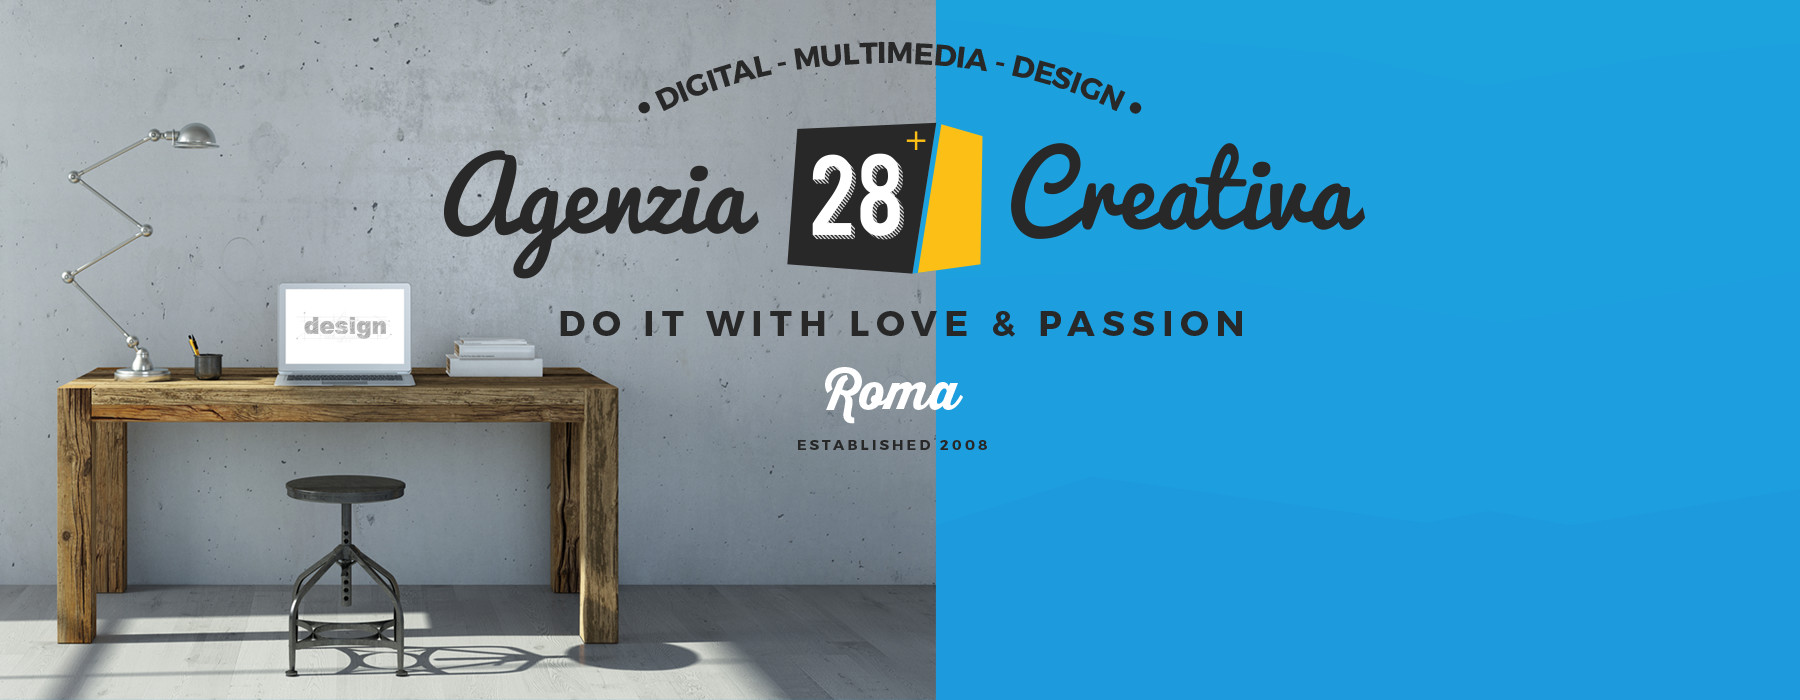 web agency roma 28do it